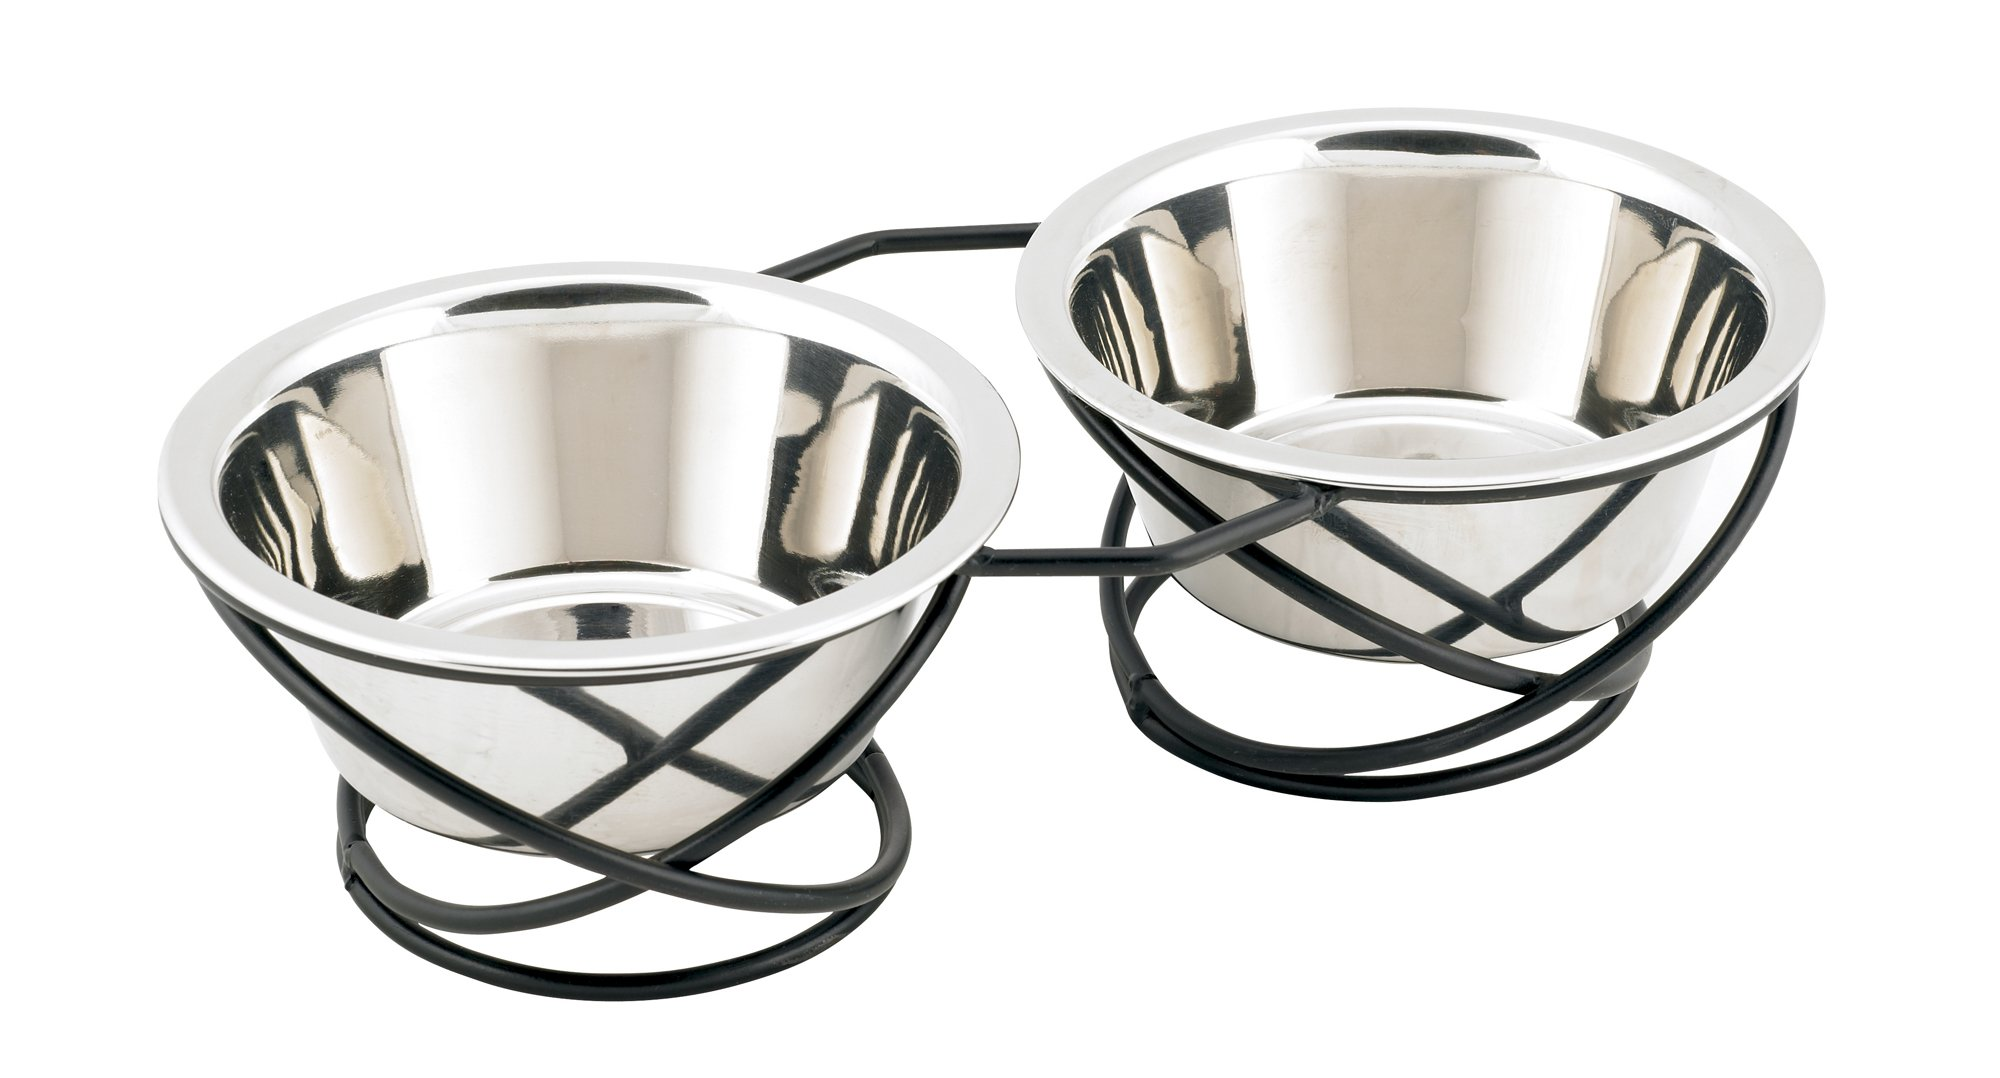 Buddy's Line Spring Style Double Diner Pet Bowl, Black Iron Base, 12 ounces